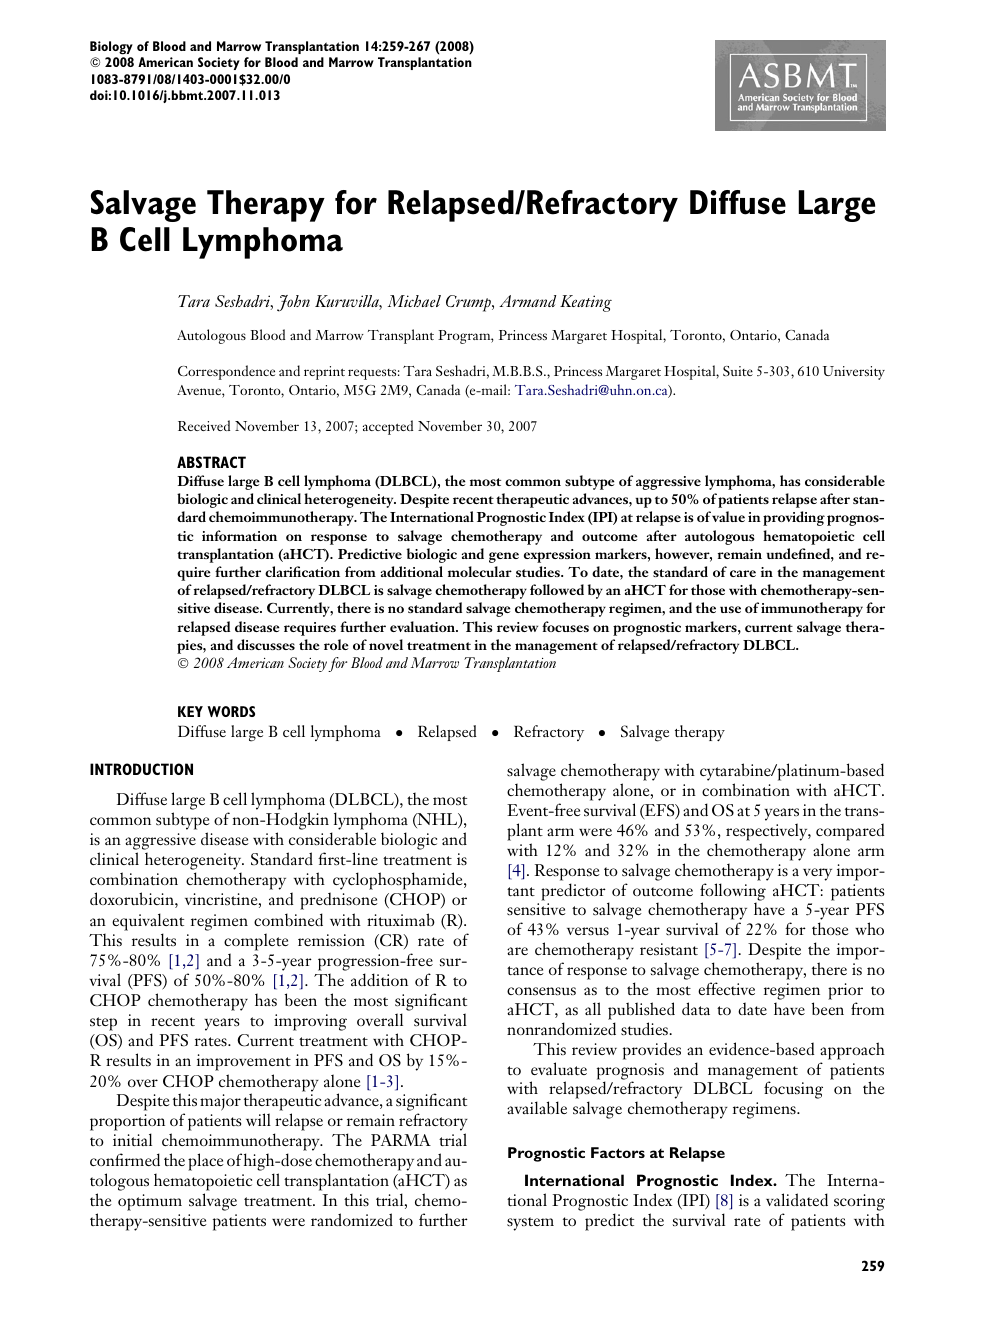 Salvage Therapy for Relapsed/Refractory Diffuse Large B Cell